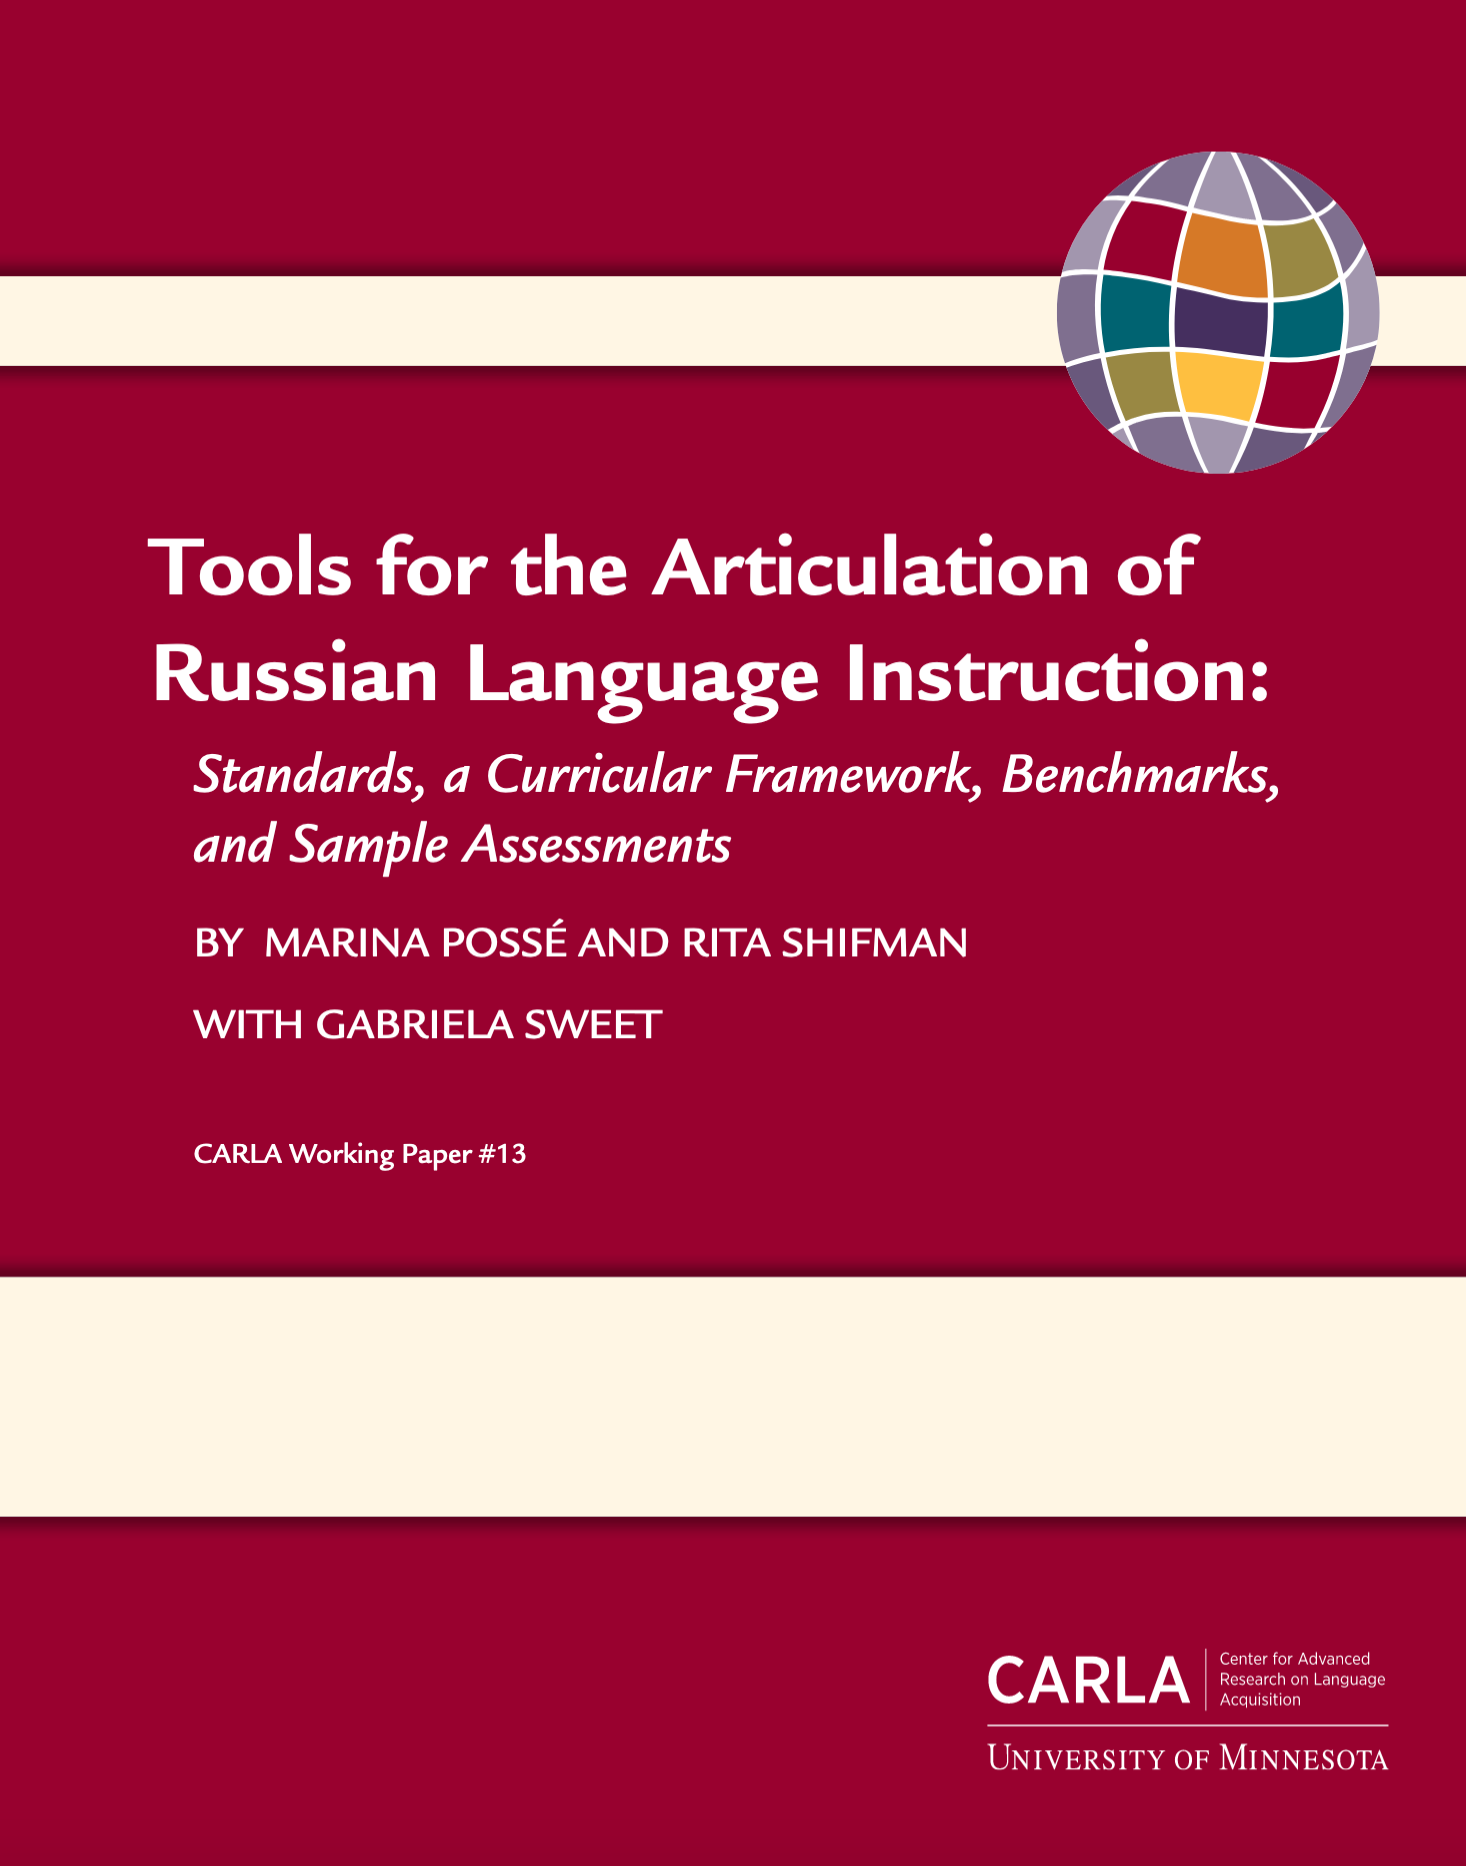 Tools for the Articulation of Russian Language Instruction